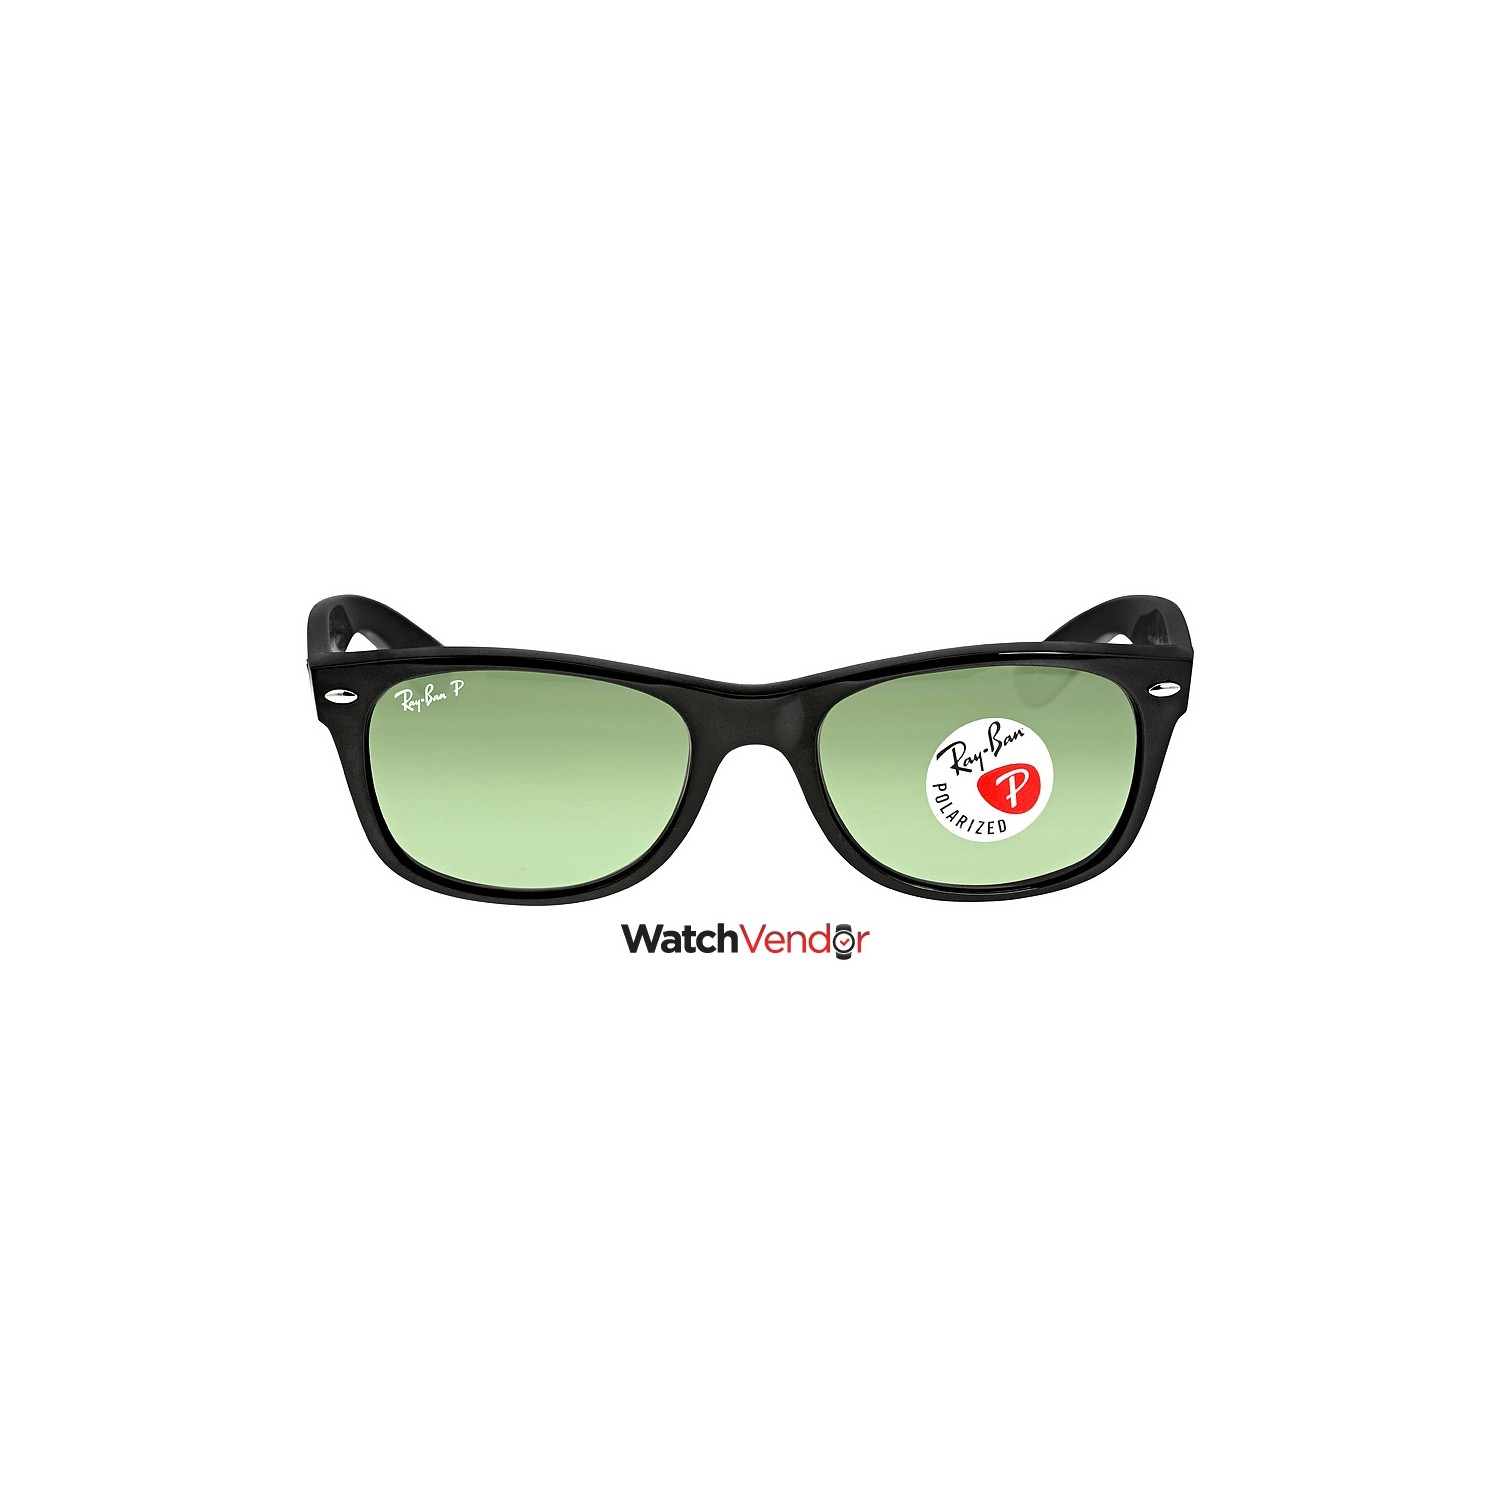 0cd6150c49 Ray-Ban New Wayfarer Polarized Black Green 52mm Sunglasses RB2132 901 58  52-18 - Online Only